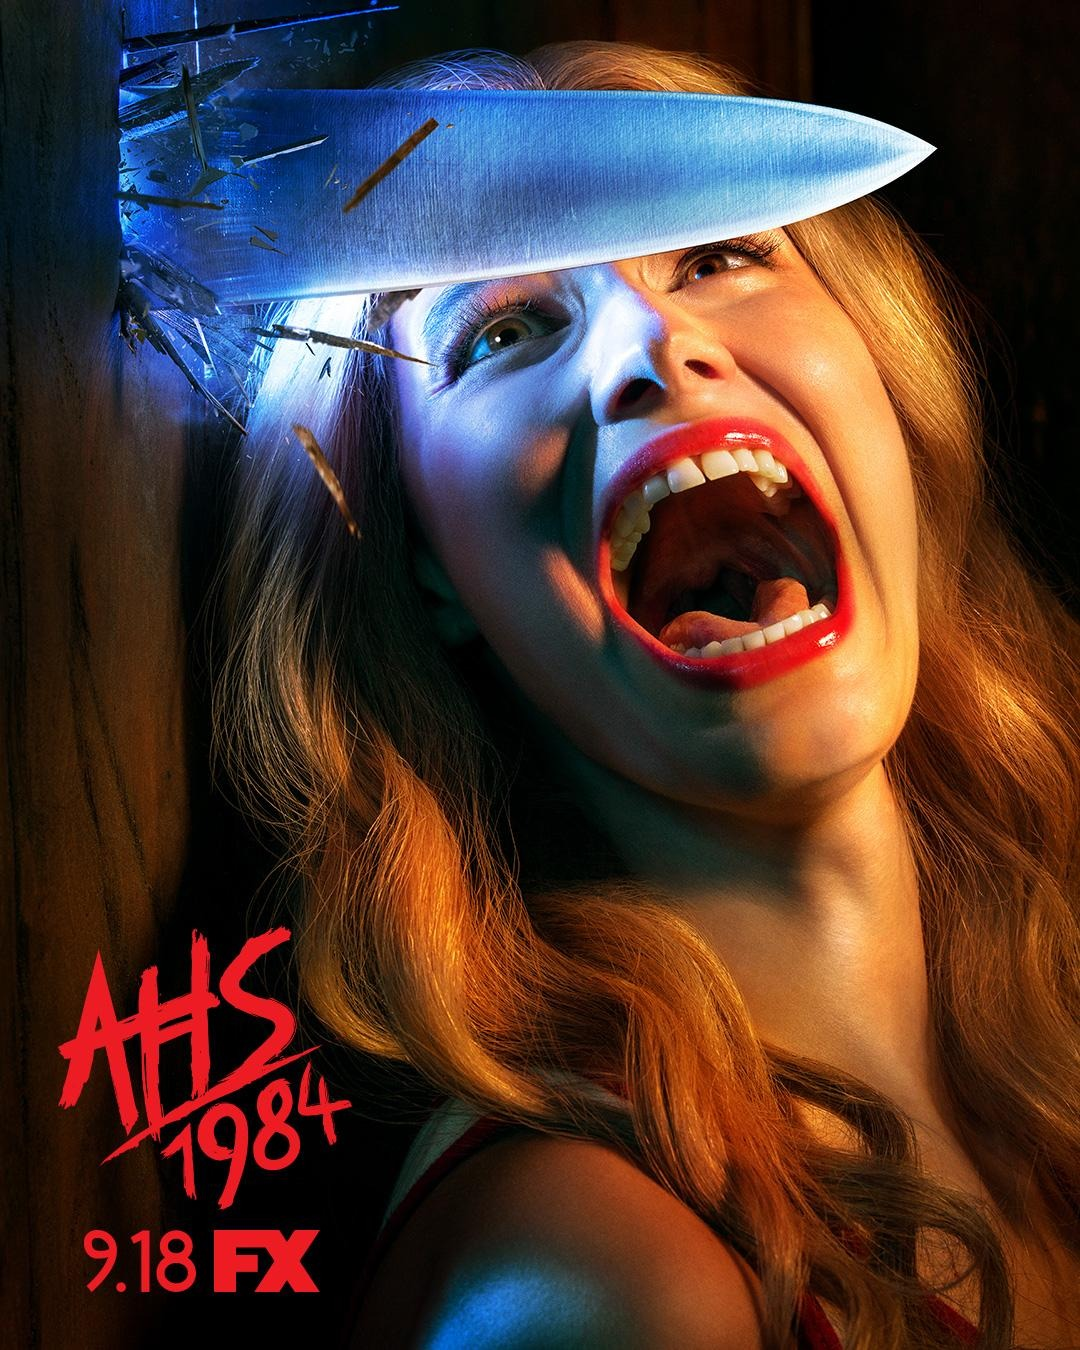 Extra Large Movie Poster Image for American Horror Story (#102 of 102)